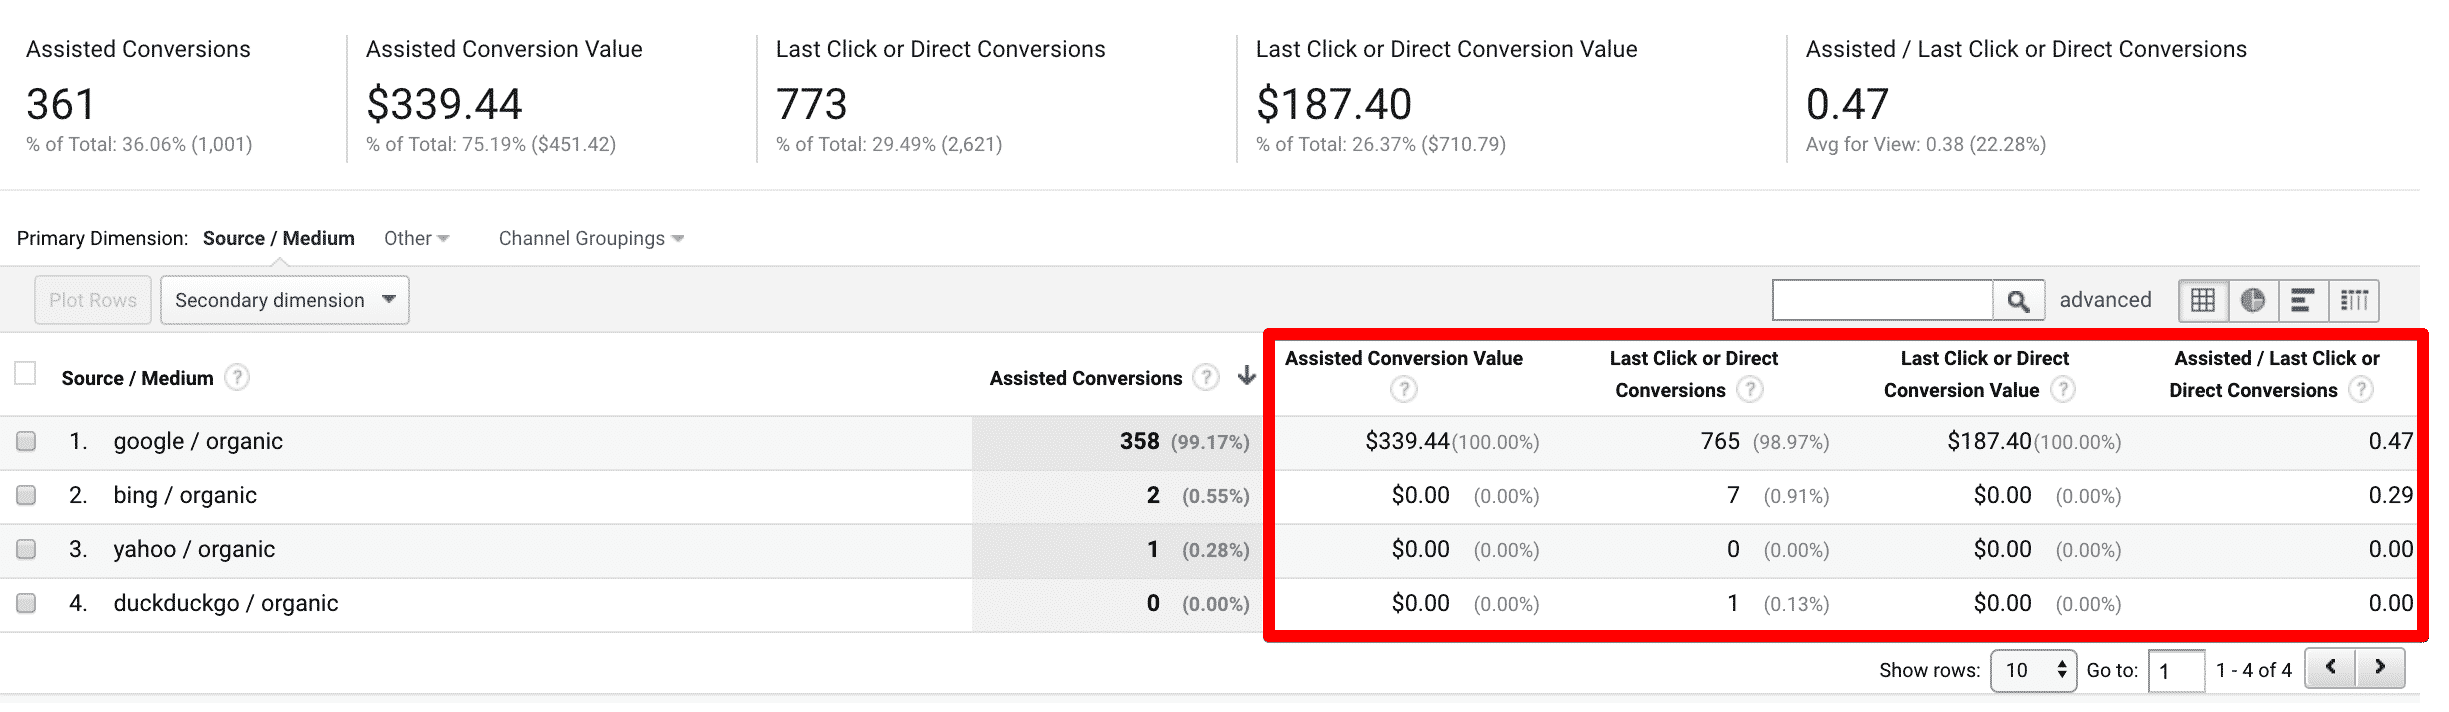 Google Analytics Seo Assisted Conversions Interactions